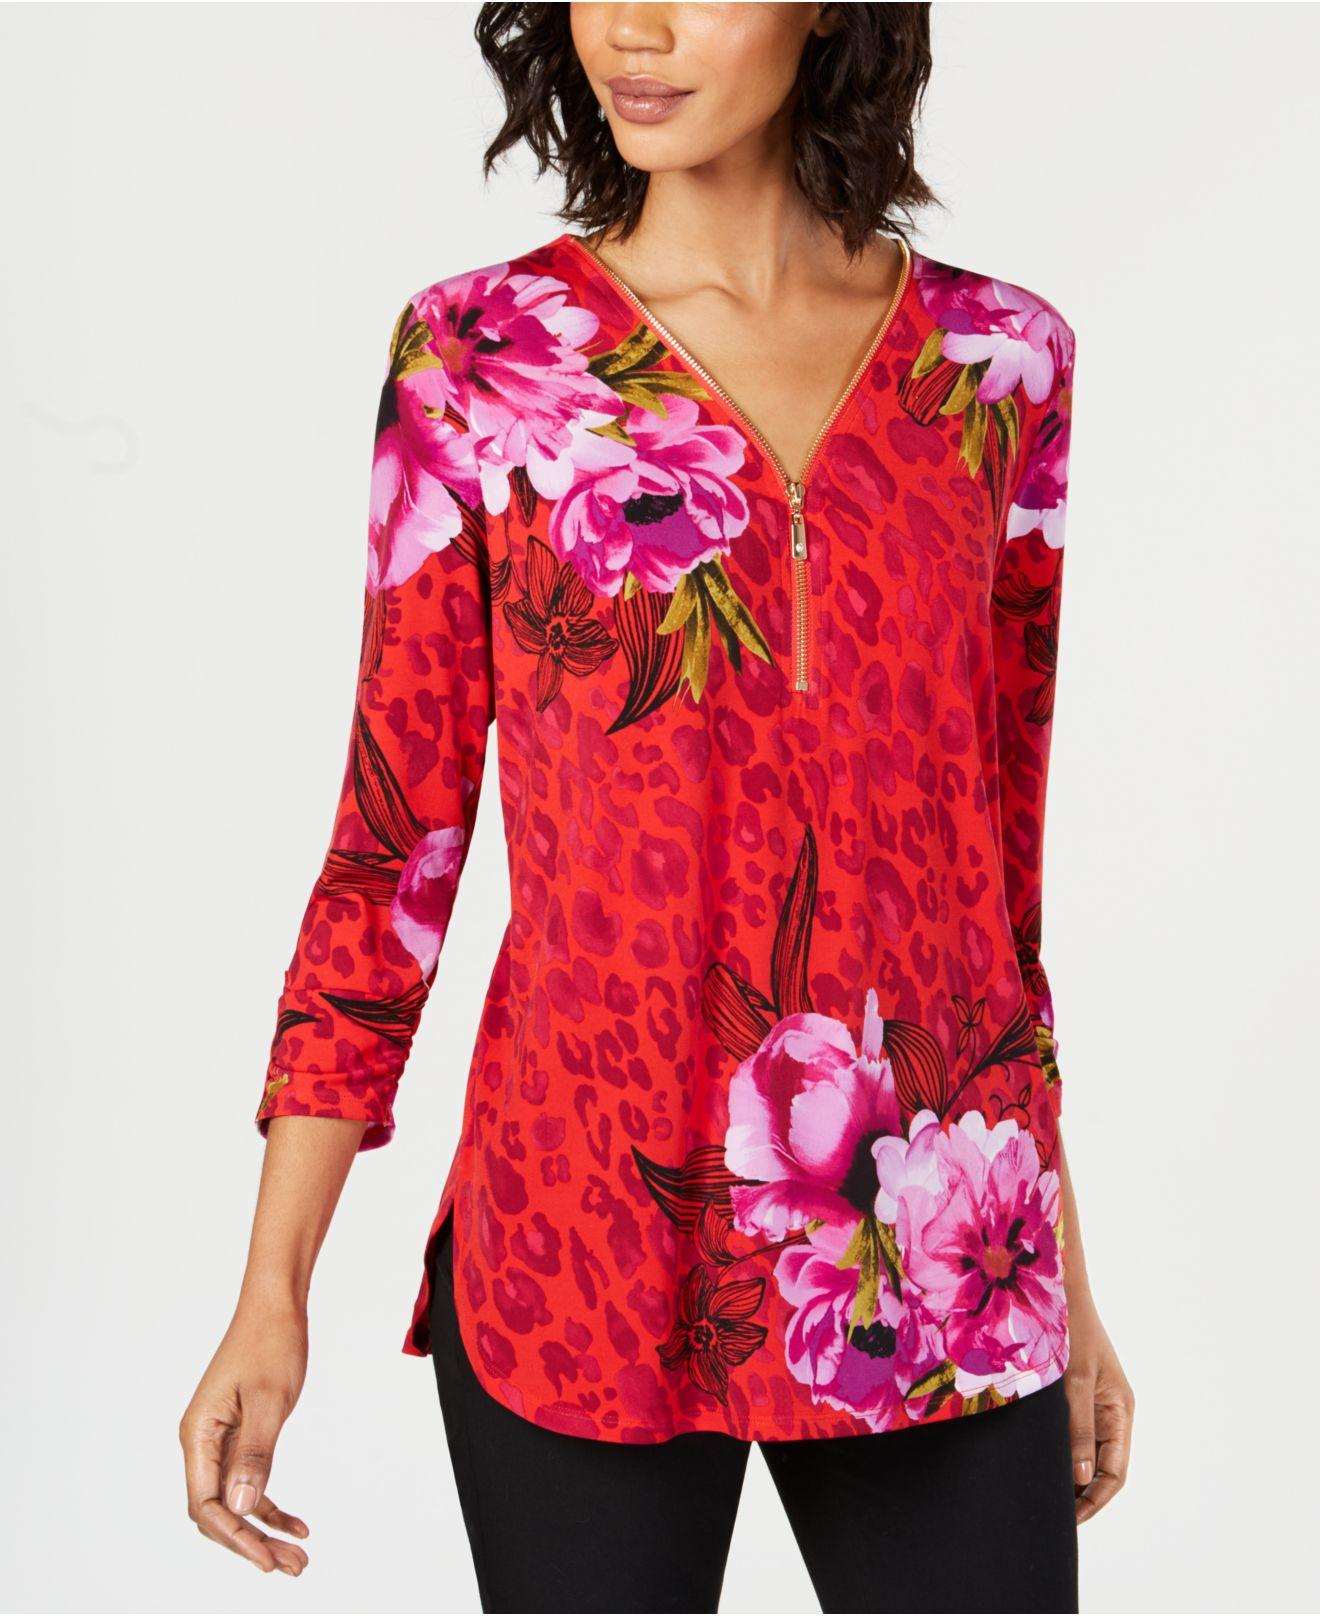 f81976894f591 Lyst - Alfani Jm Collection Petite Printed Zip-up Top